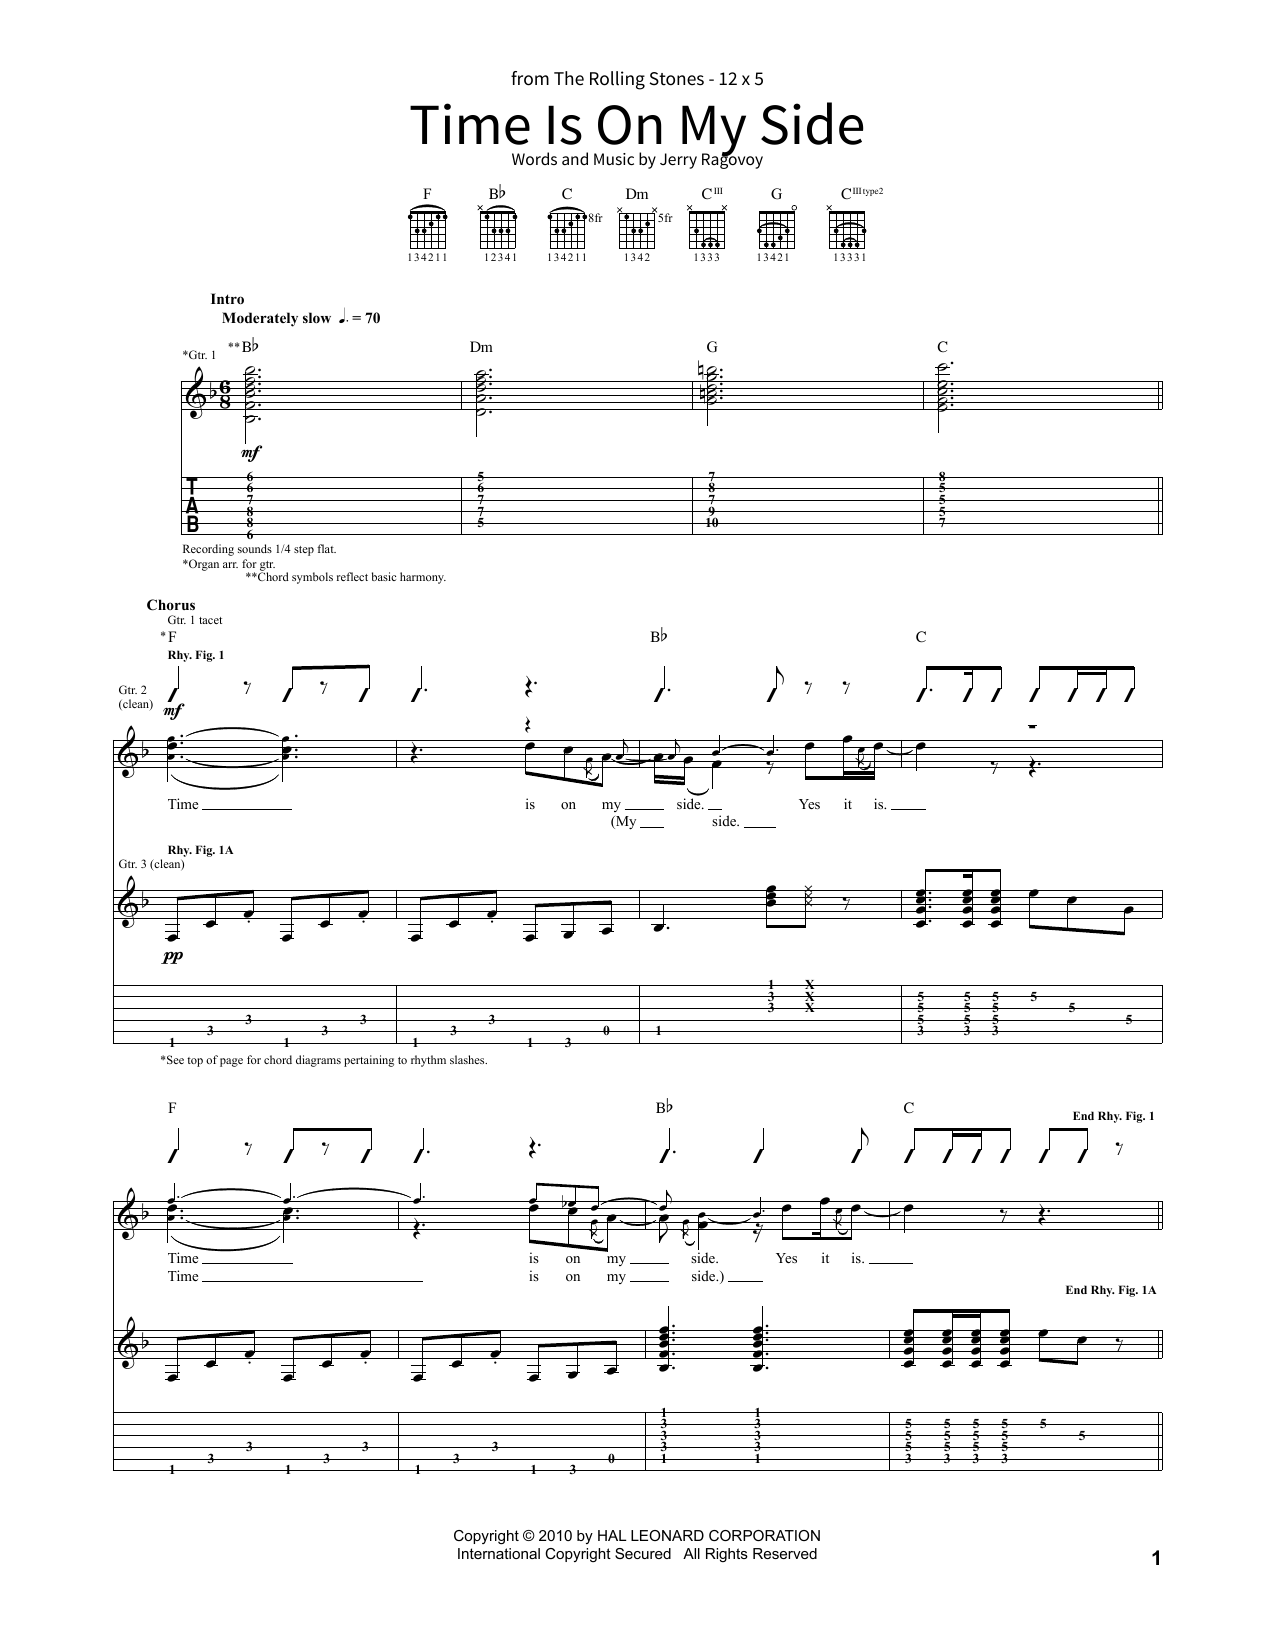 Time Is On My Side Sheet Music